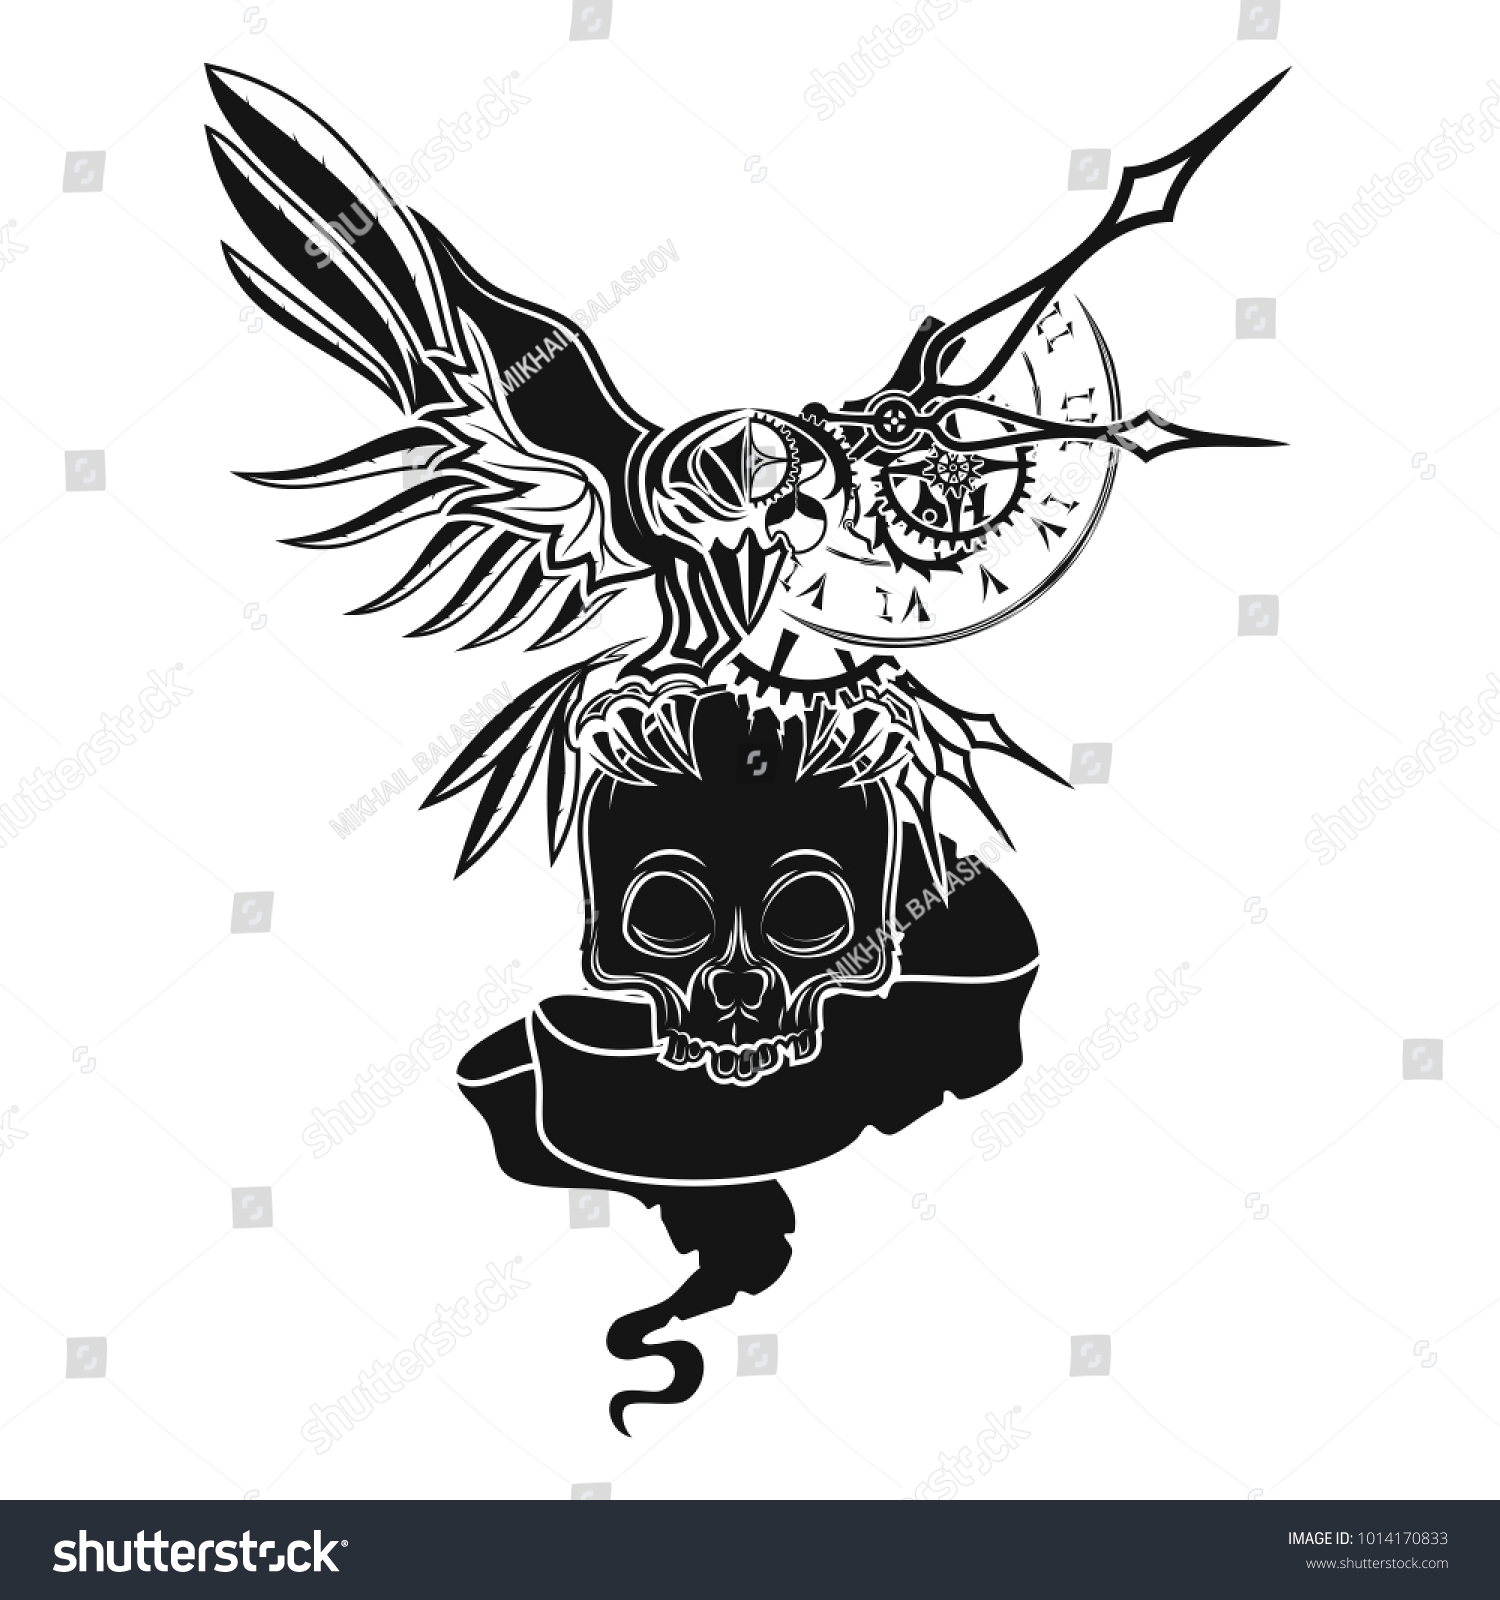 Vector Image Twofaced Raven Live Mechanical Stock Vector Royalty